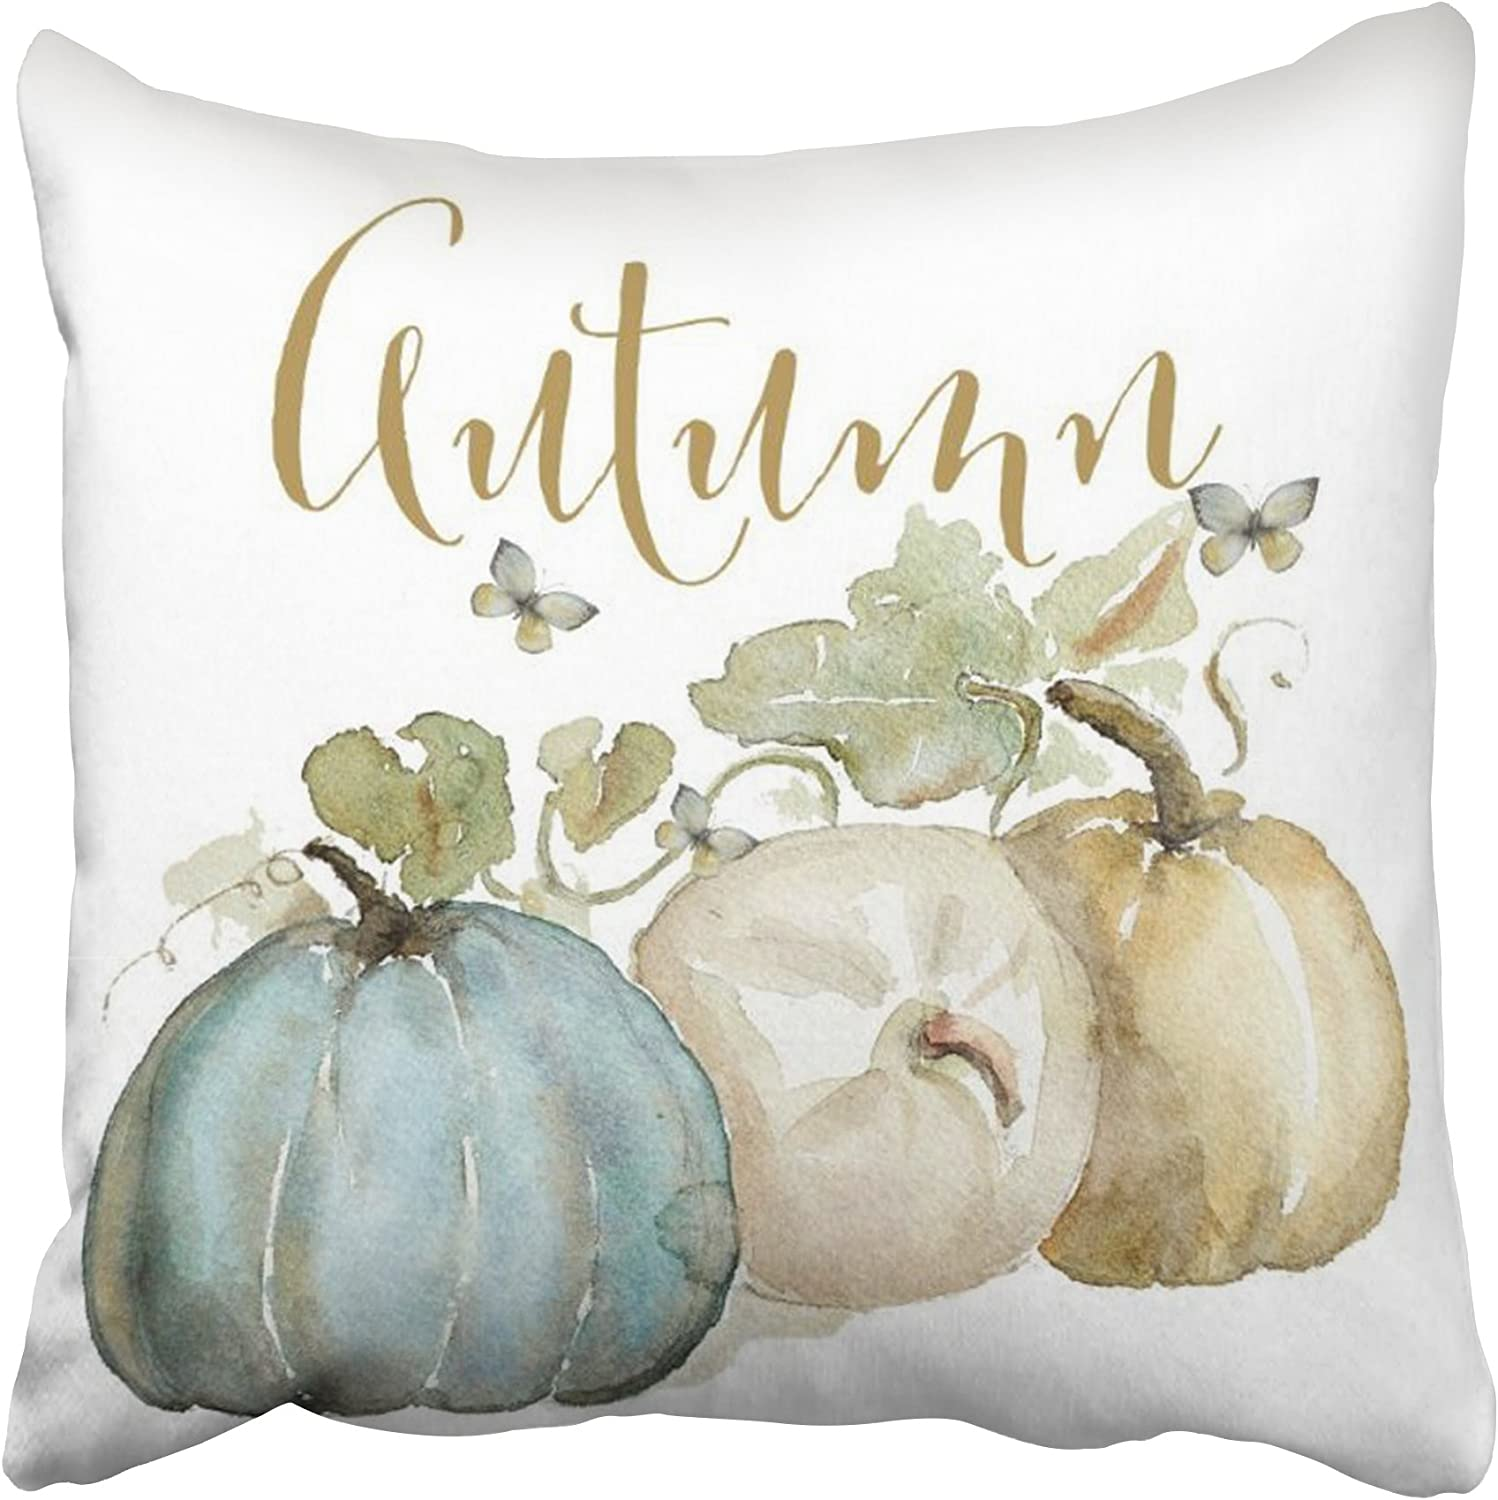 Accrocn Pillowcases Decorative Autumn Fall Blue Gray Pumpkin Watercolor Throw Pillow Covers Case Cases Cover Cushion Sofa Size 18x18 Inches Two Side